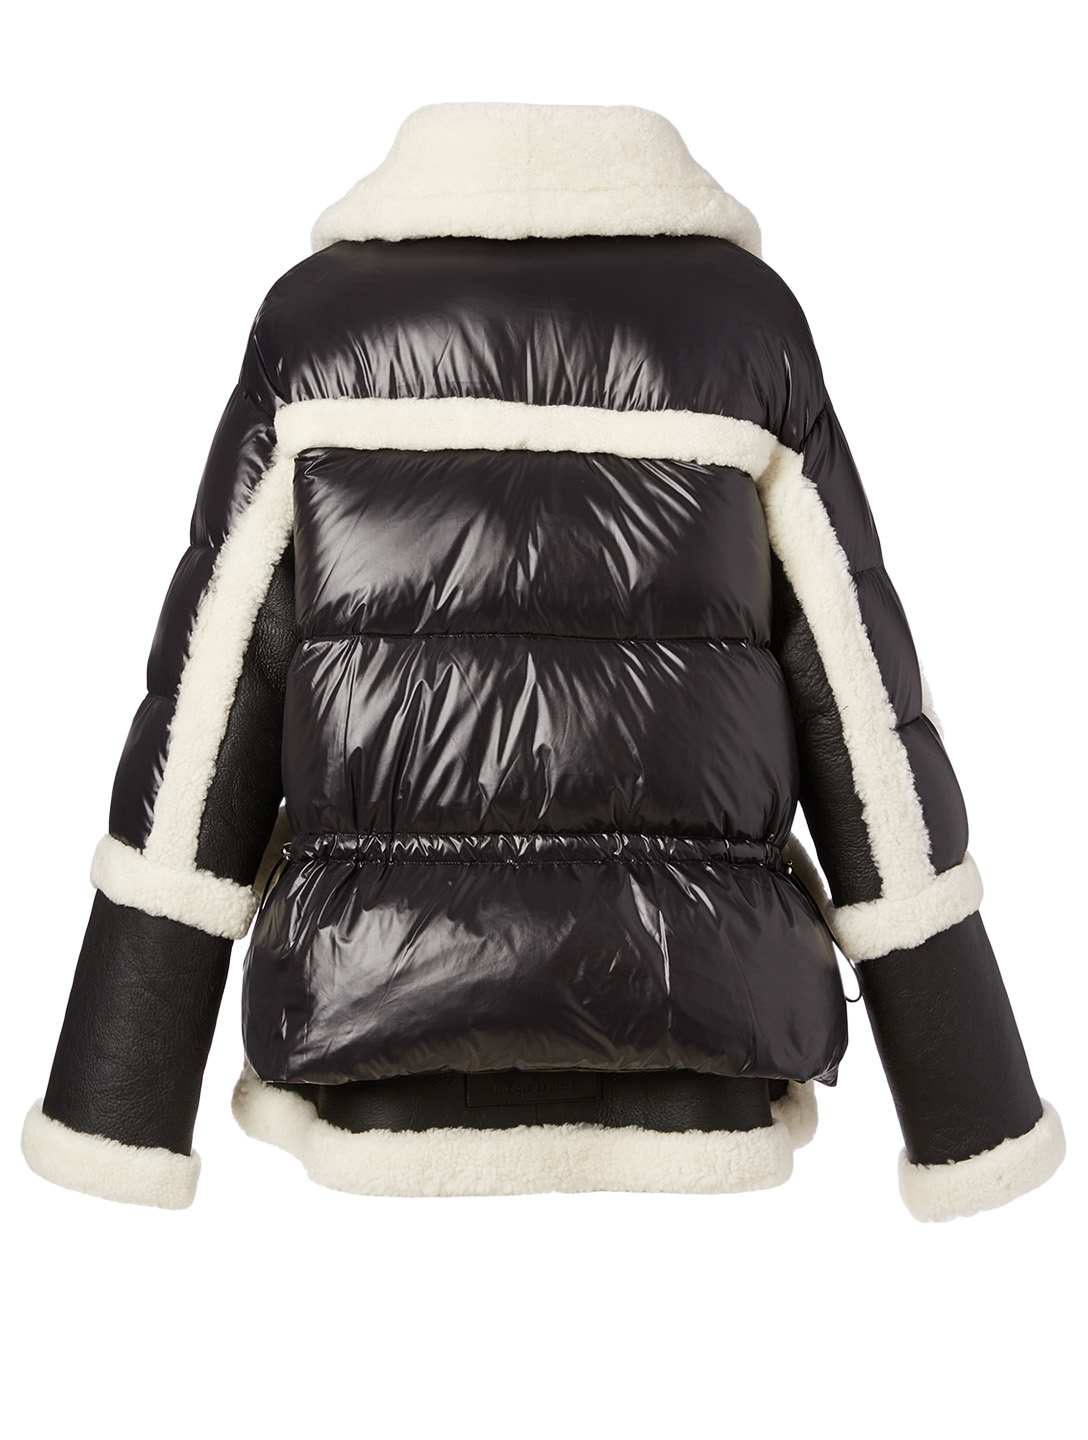 NICOLE BENISTI Montaigne Shearling Down Puffer Jacket Women's Multi